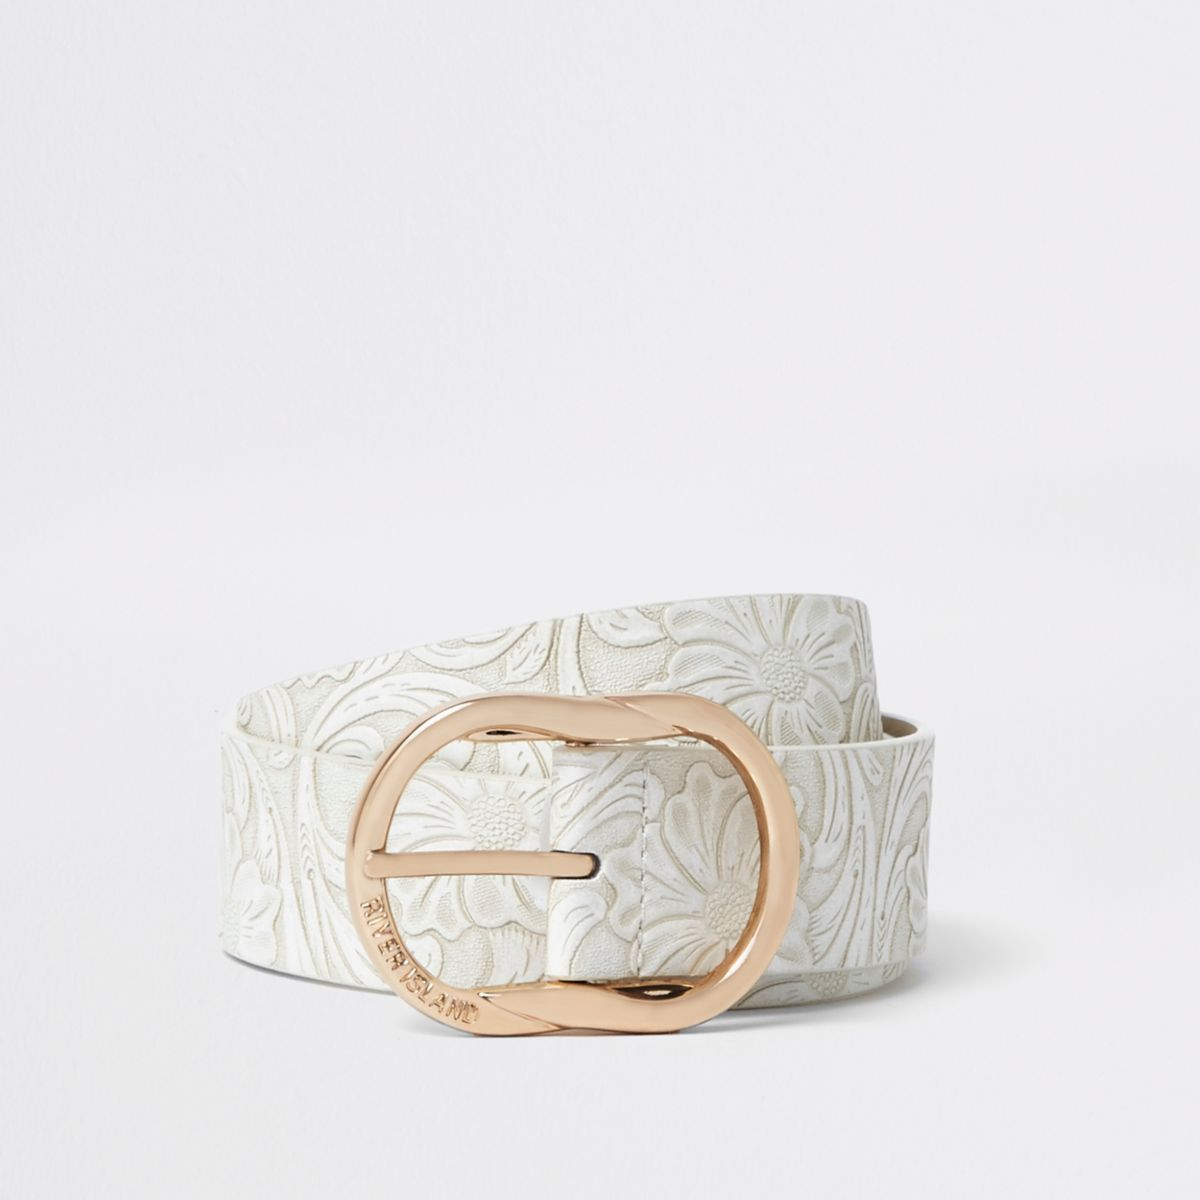 White floral embossed texture jeans belt